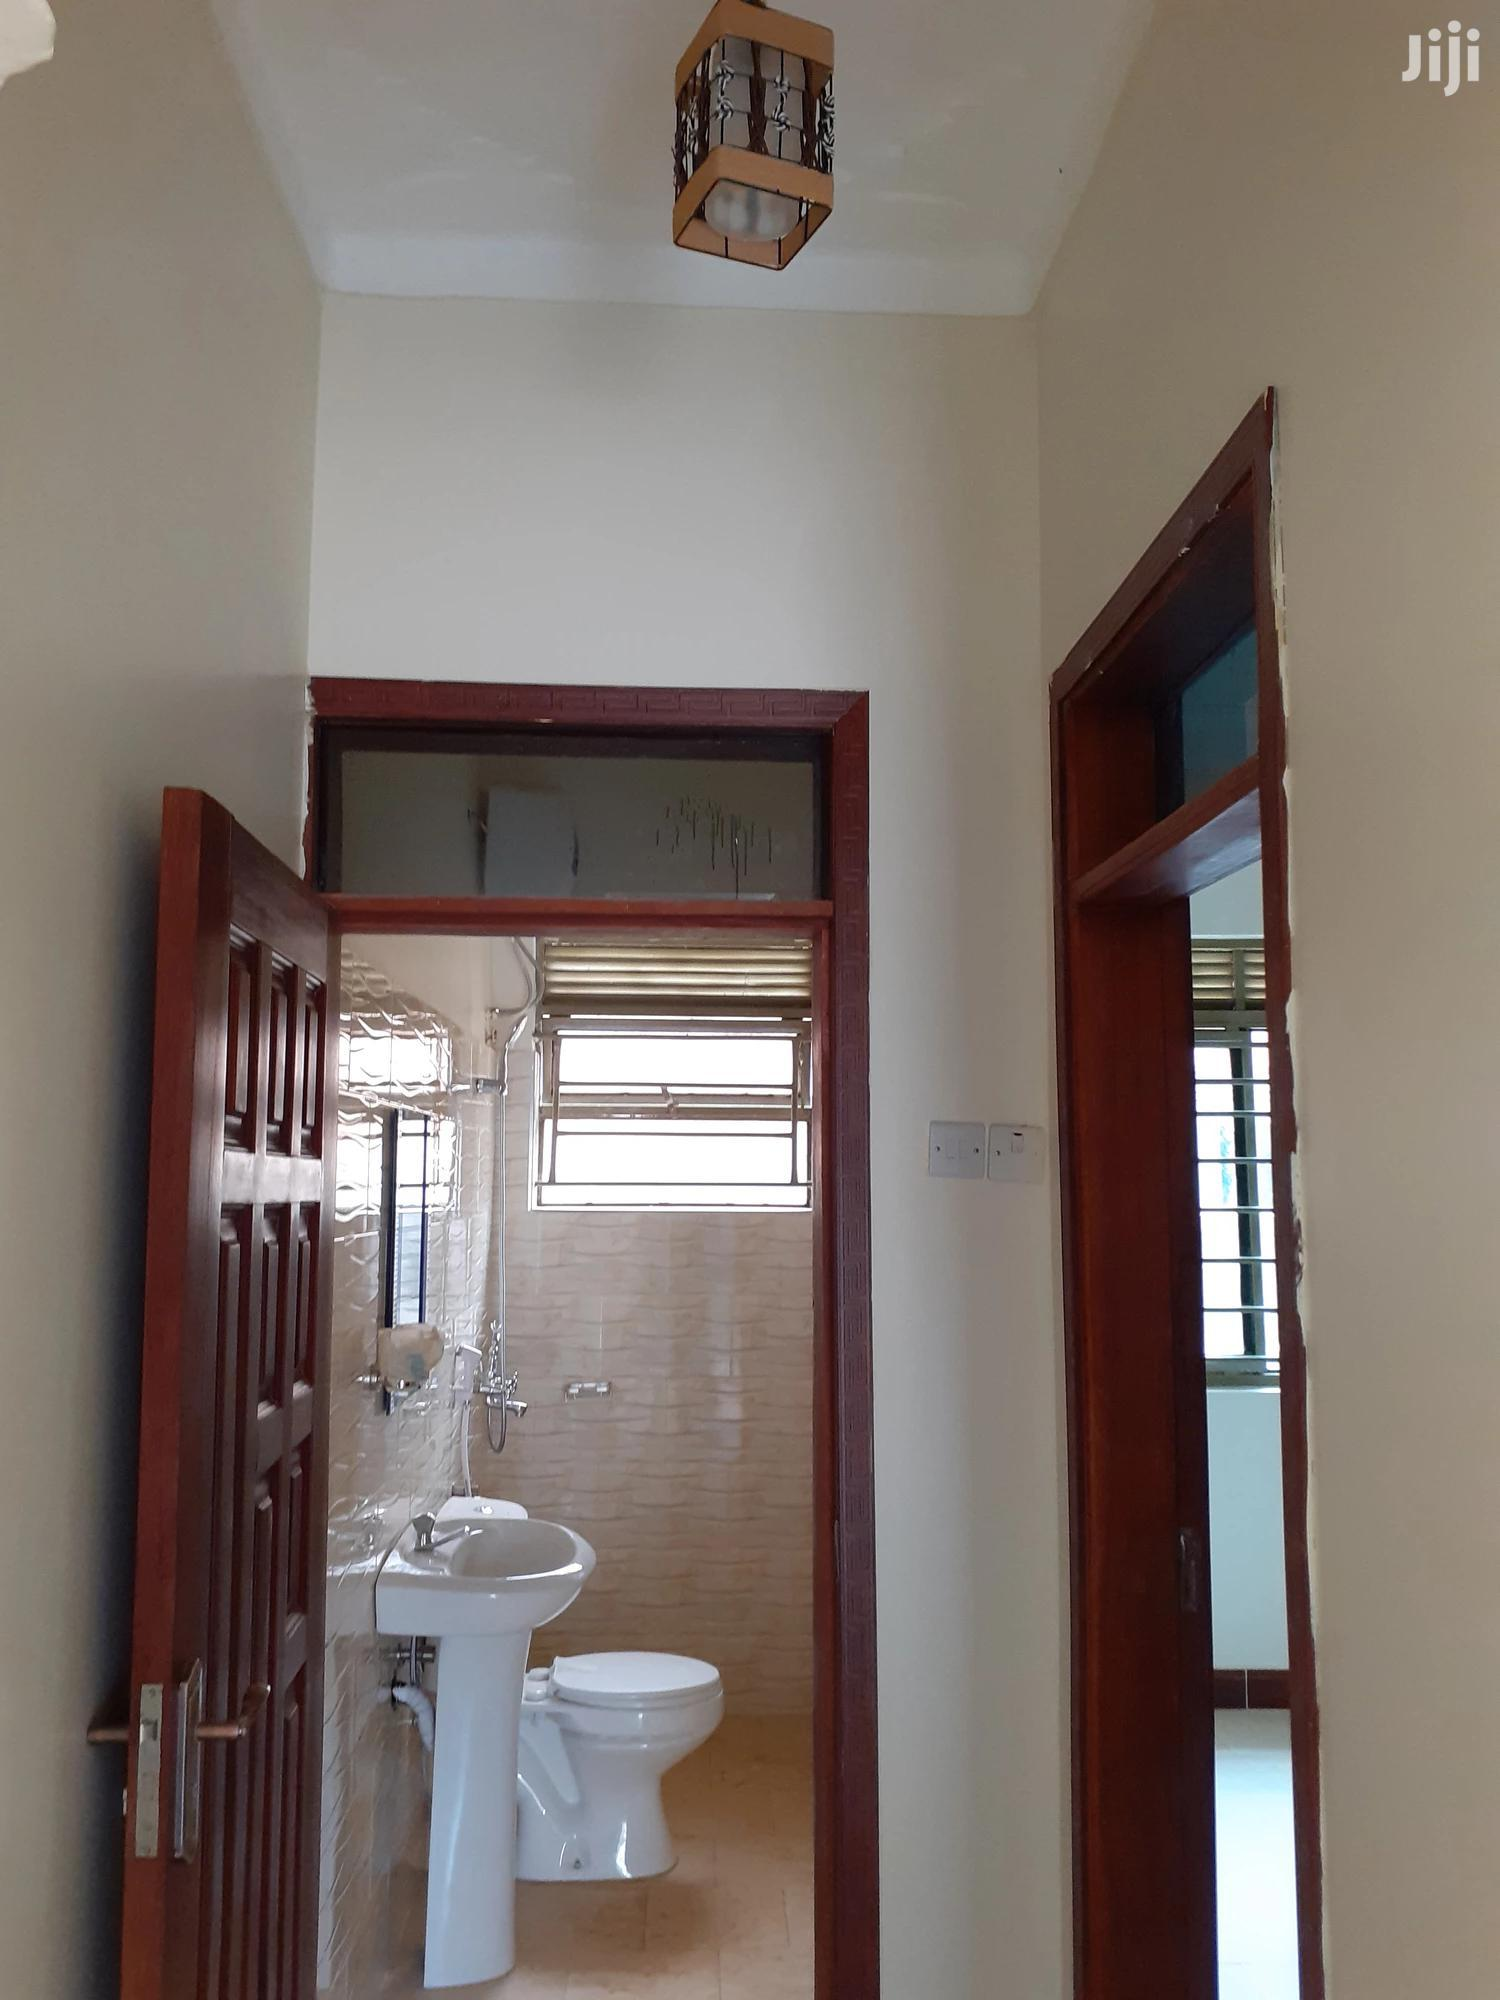 New Double House For Rent D In Najjera | Houses & Apartments For Rent for sale in Kampala, Central Region, Uganda